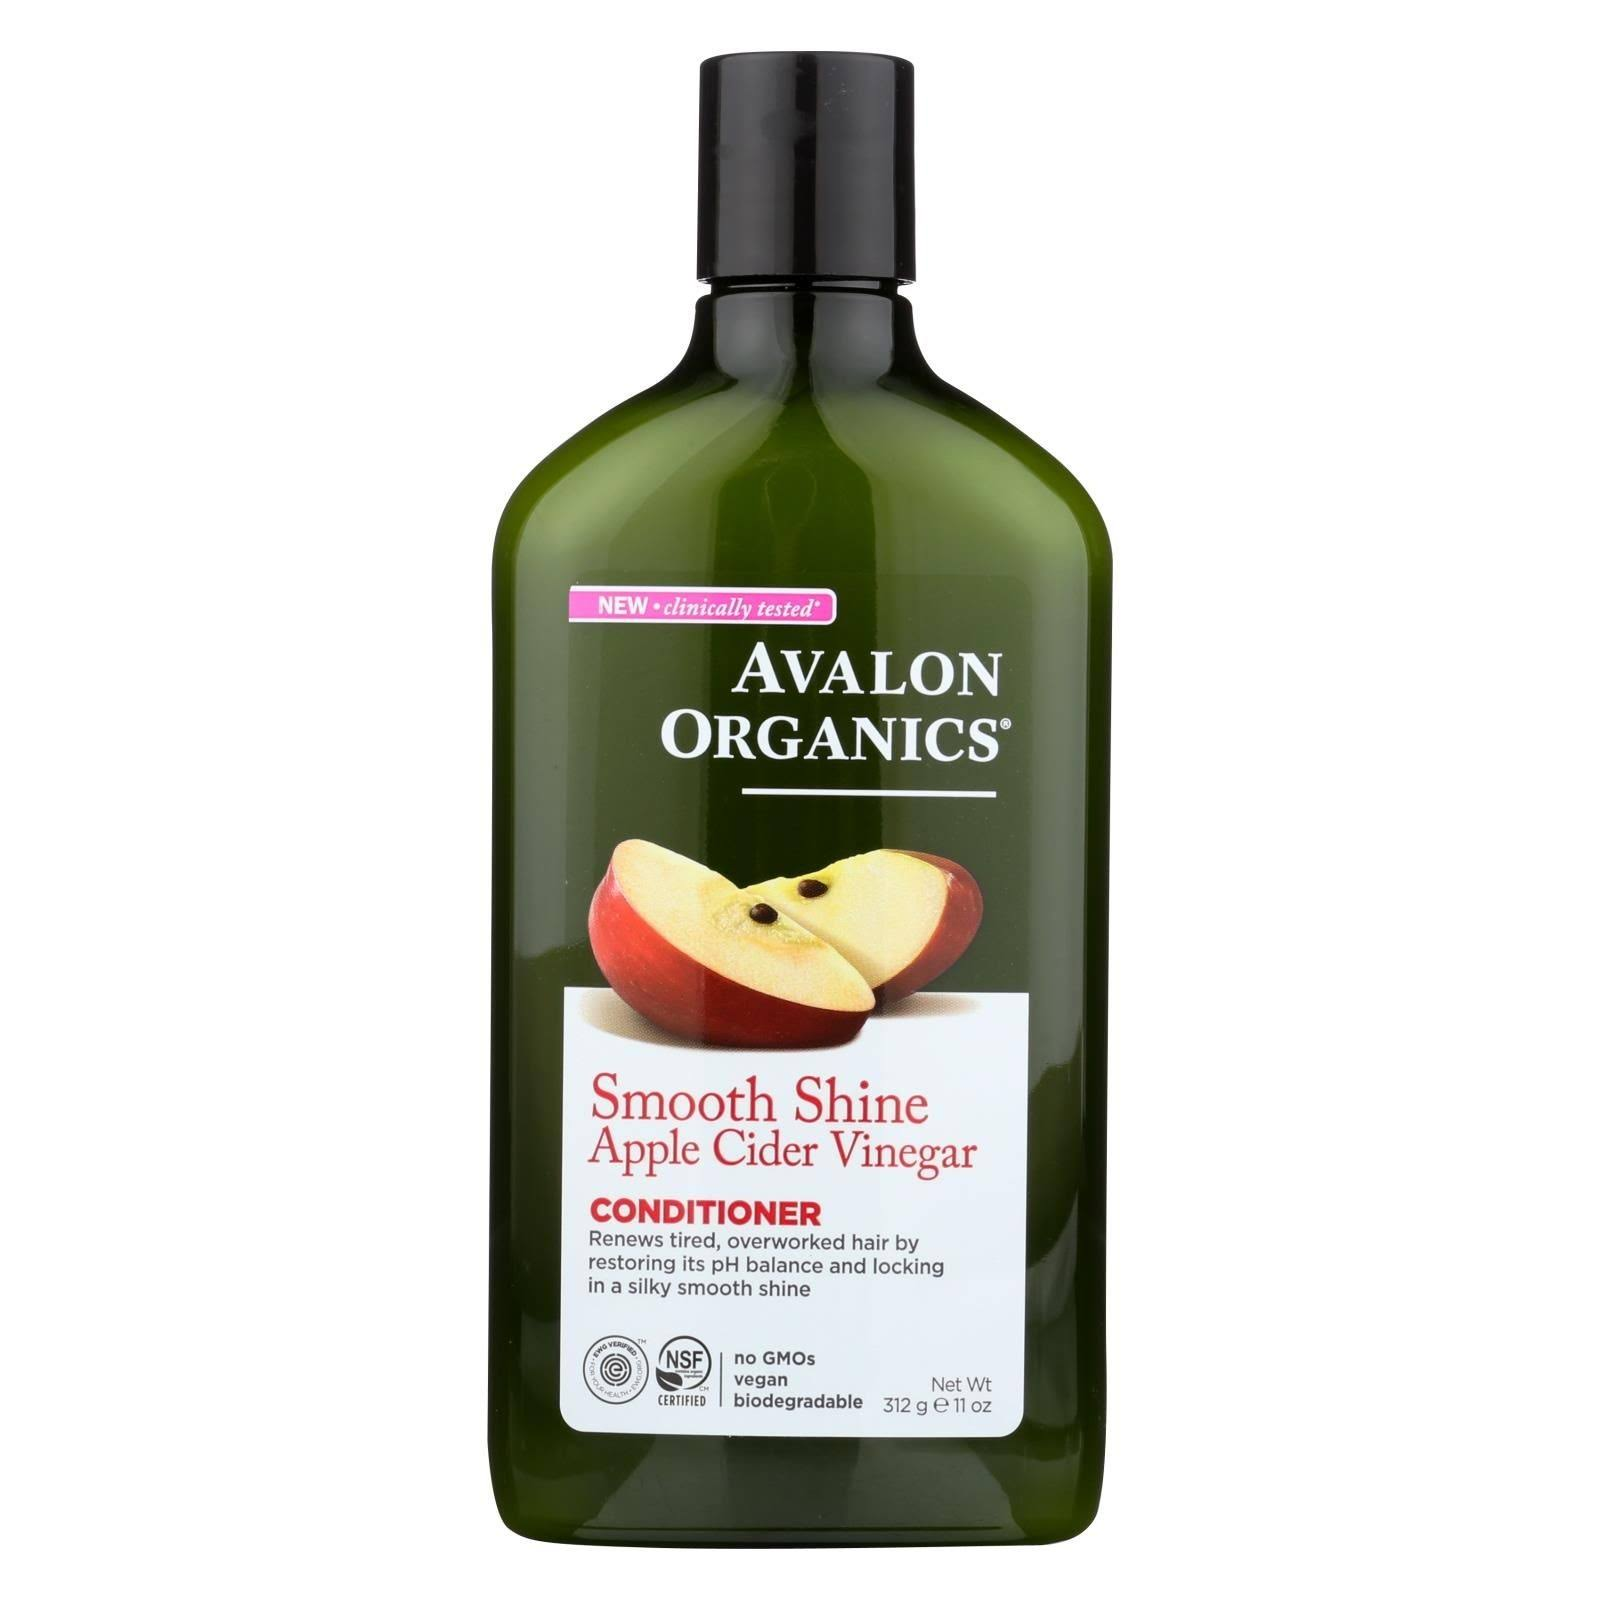 Avalon Organics Conditioner, Smooth Shine, Apple Cider Vinegar - 312 g